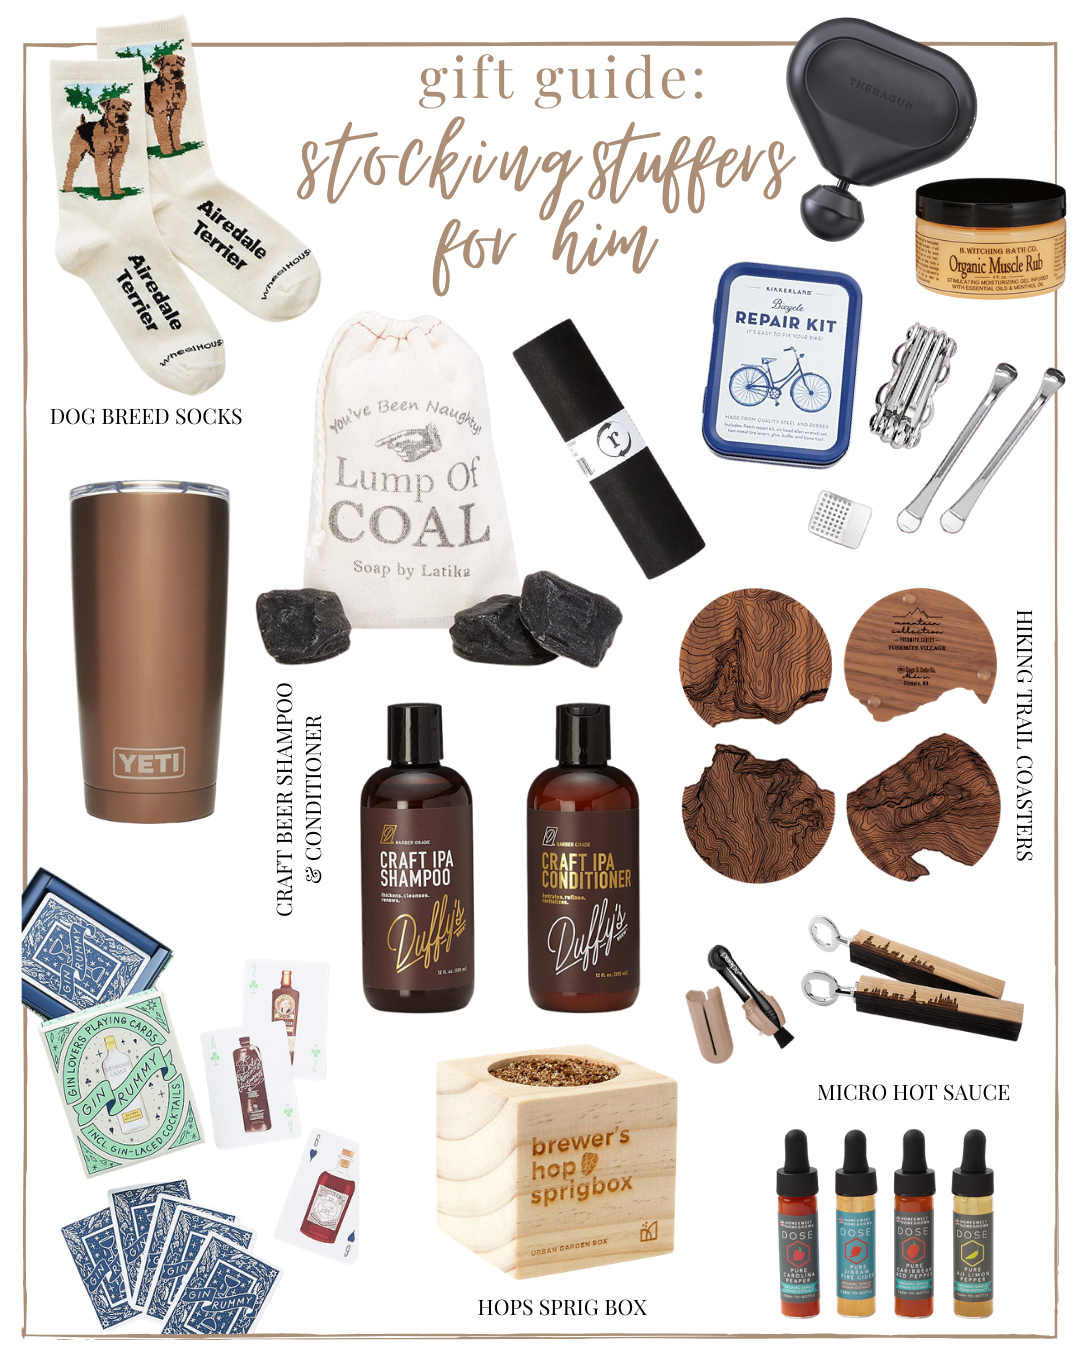 2020 Stocking Stuffers for Him & Her | 2020 Holiday Gift Guide: Stocking Stuffers for Him | 202 Stocking Stuffers | Louella Reese